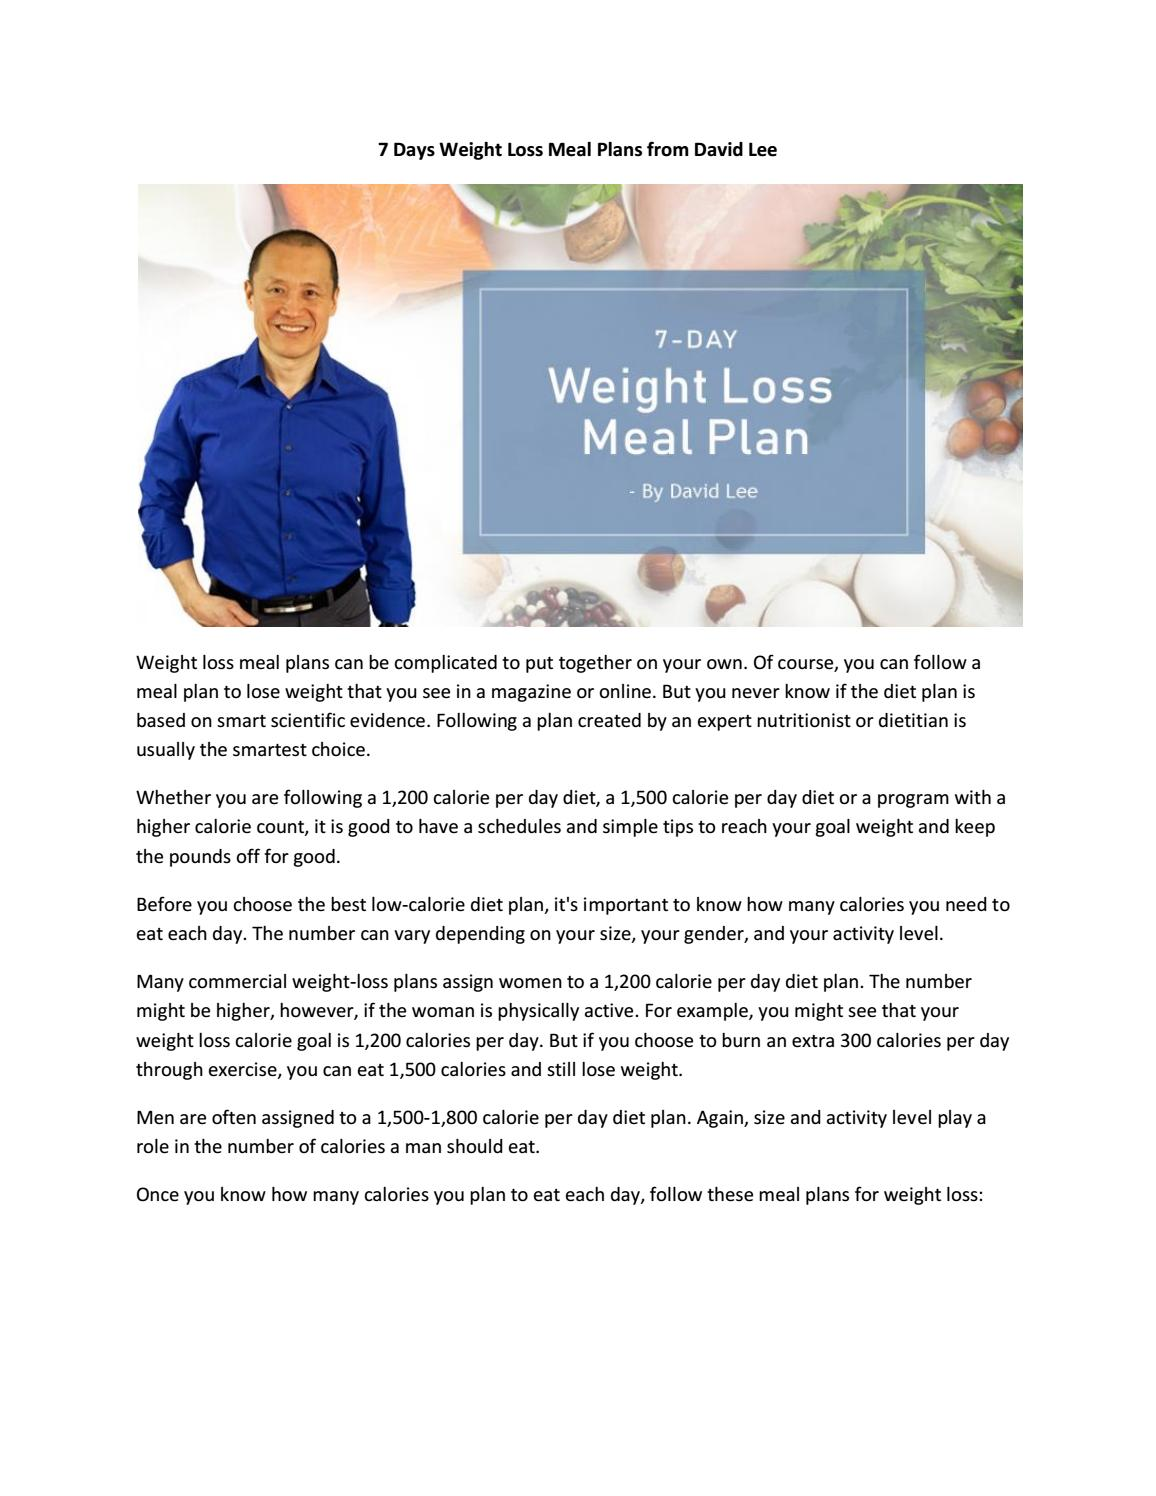 7 Days Weight Loss Meal Plans From David Lee By David Lee Issuu